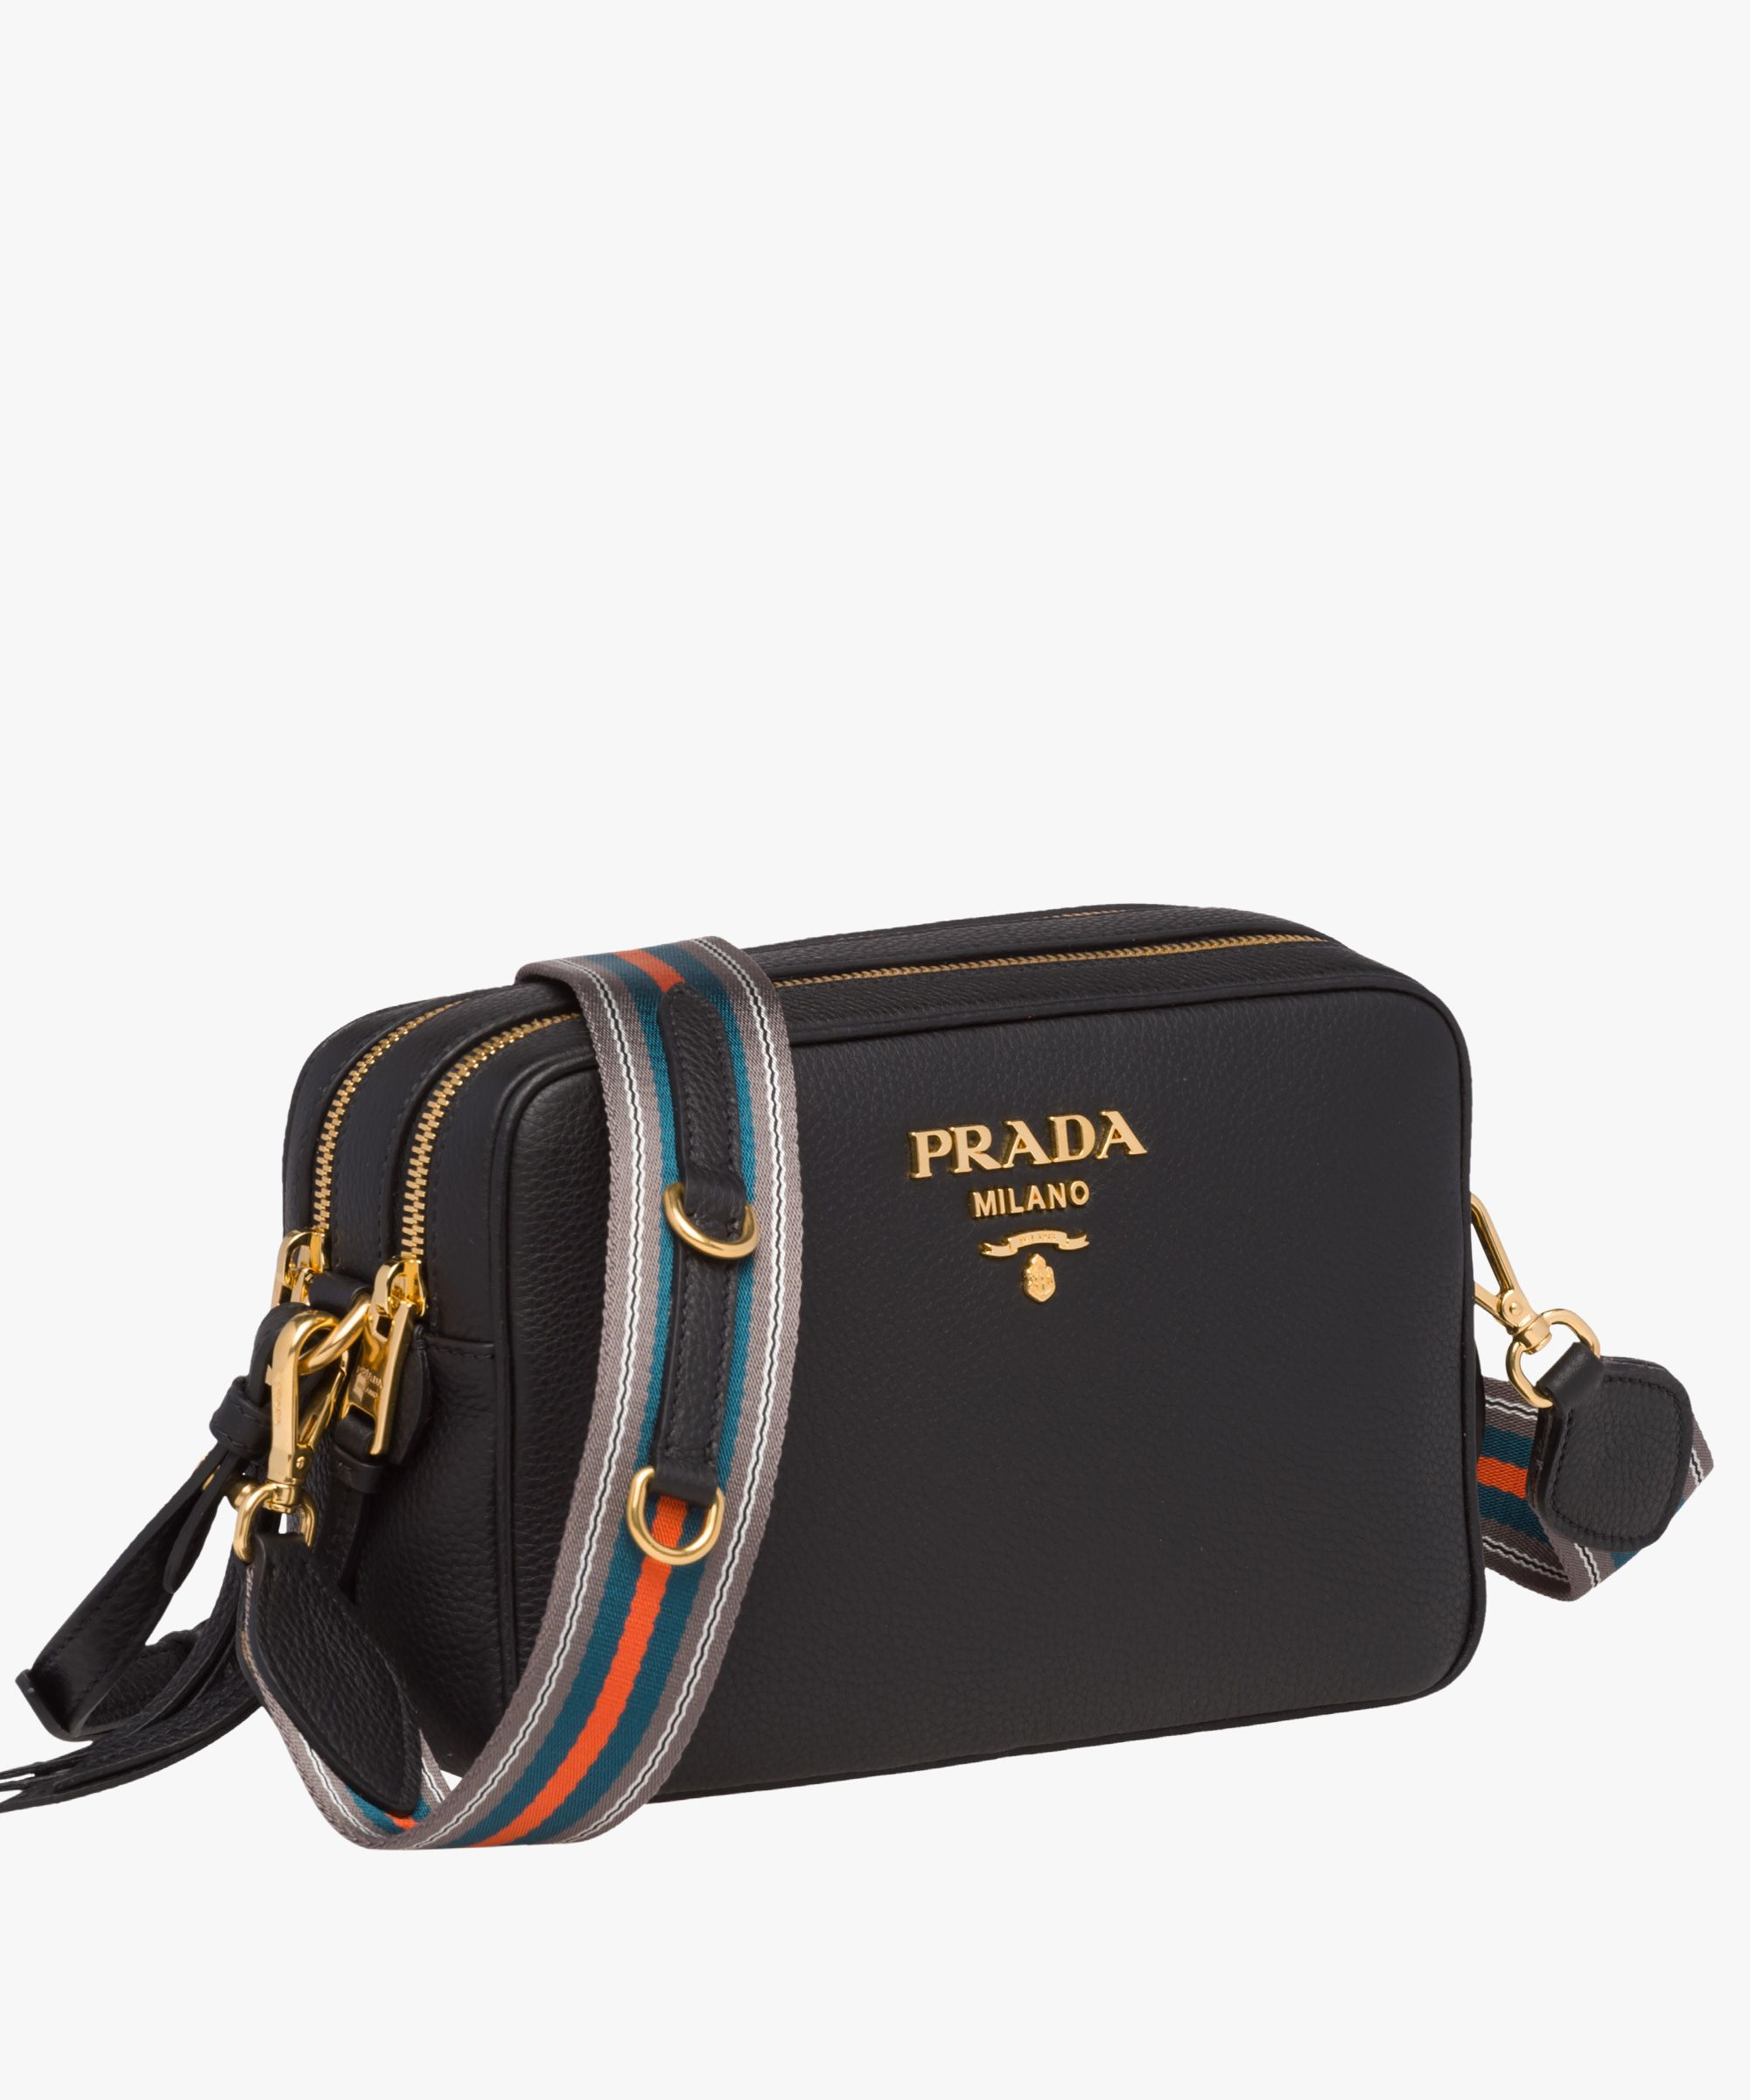 e8e06ee26d93 Nylon shoulder bag | BAGs | Bags, Prada bag, Shoulder Bag